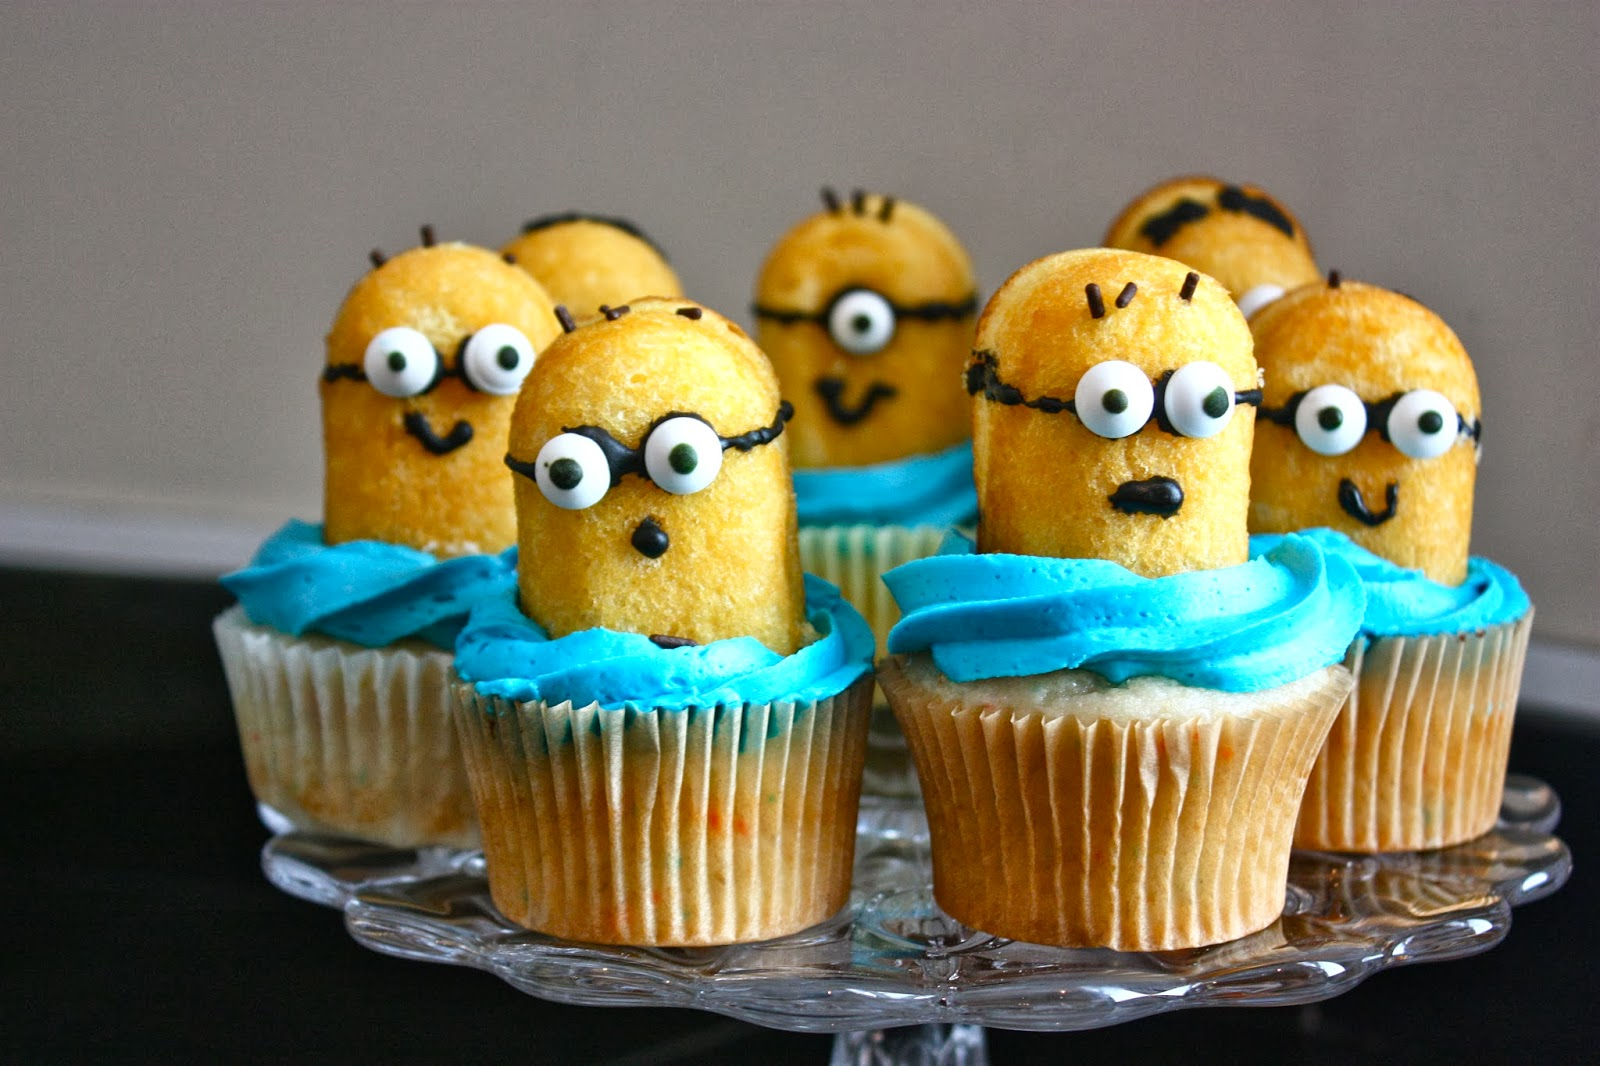 Who doesn't love those crazy and adorable little yellow minions? They're everywhere these days: movies, games, clothing, theme parks, and even made an appearance at the Oscars.